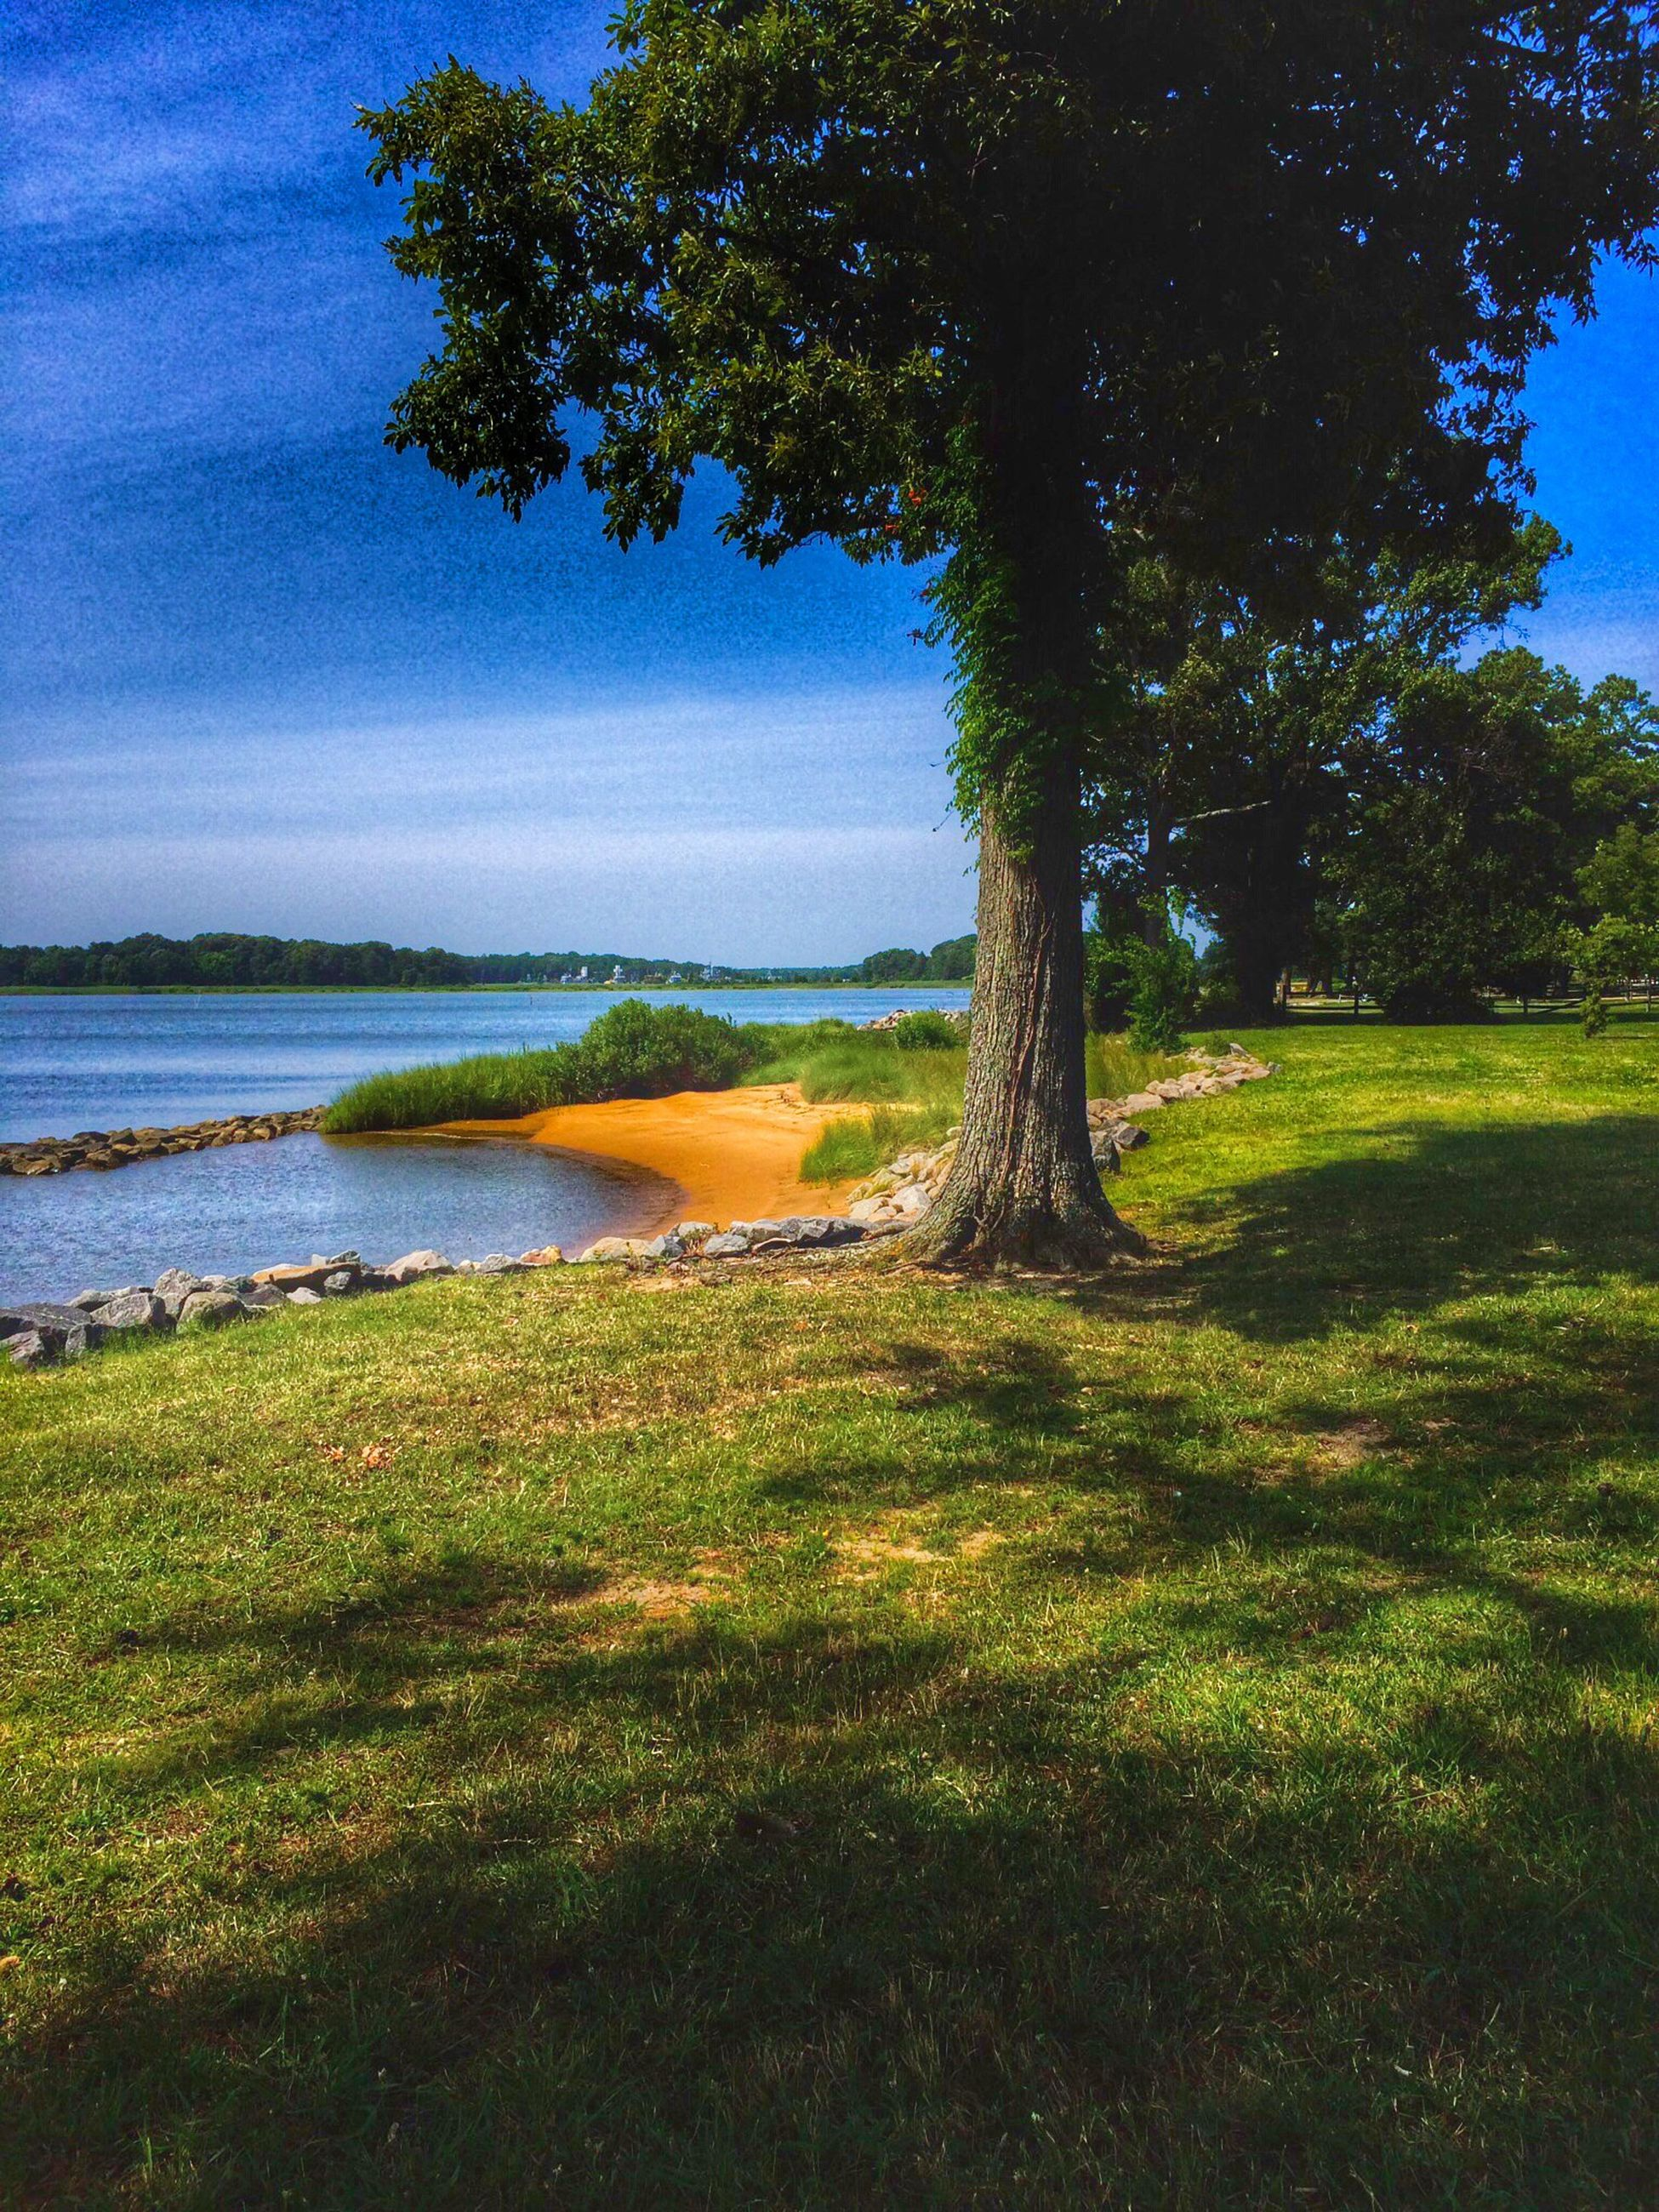 water, tree, beauty in nature, scenics, tranquility, blue, nature, tranquil scene, green color, growth, idyllic, sunlight, outdoors, sea, plant, day, sky, forest, no people, non-urban scene